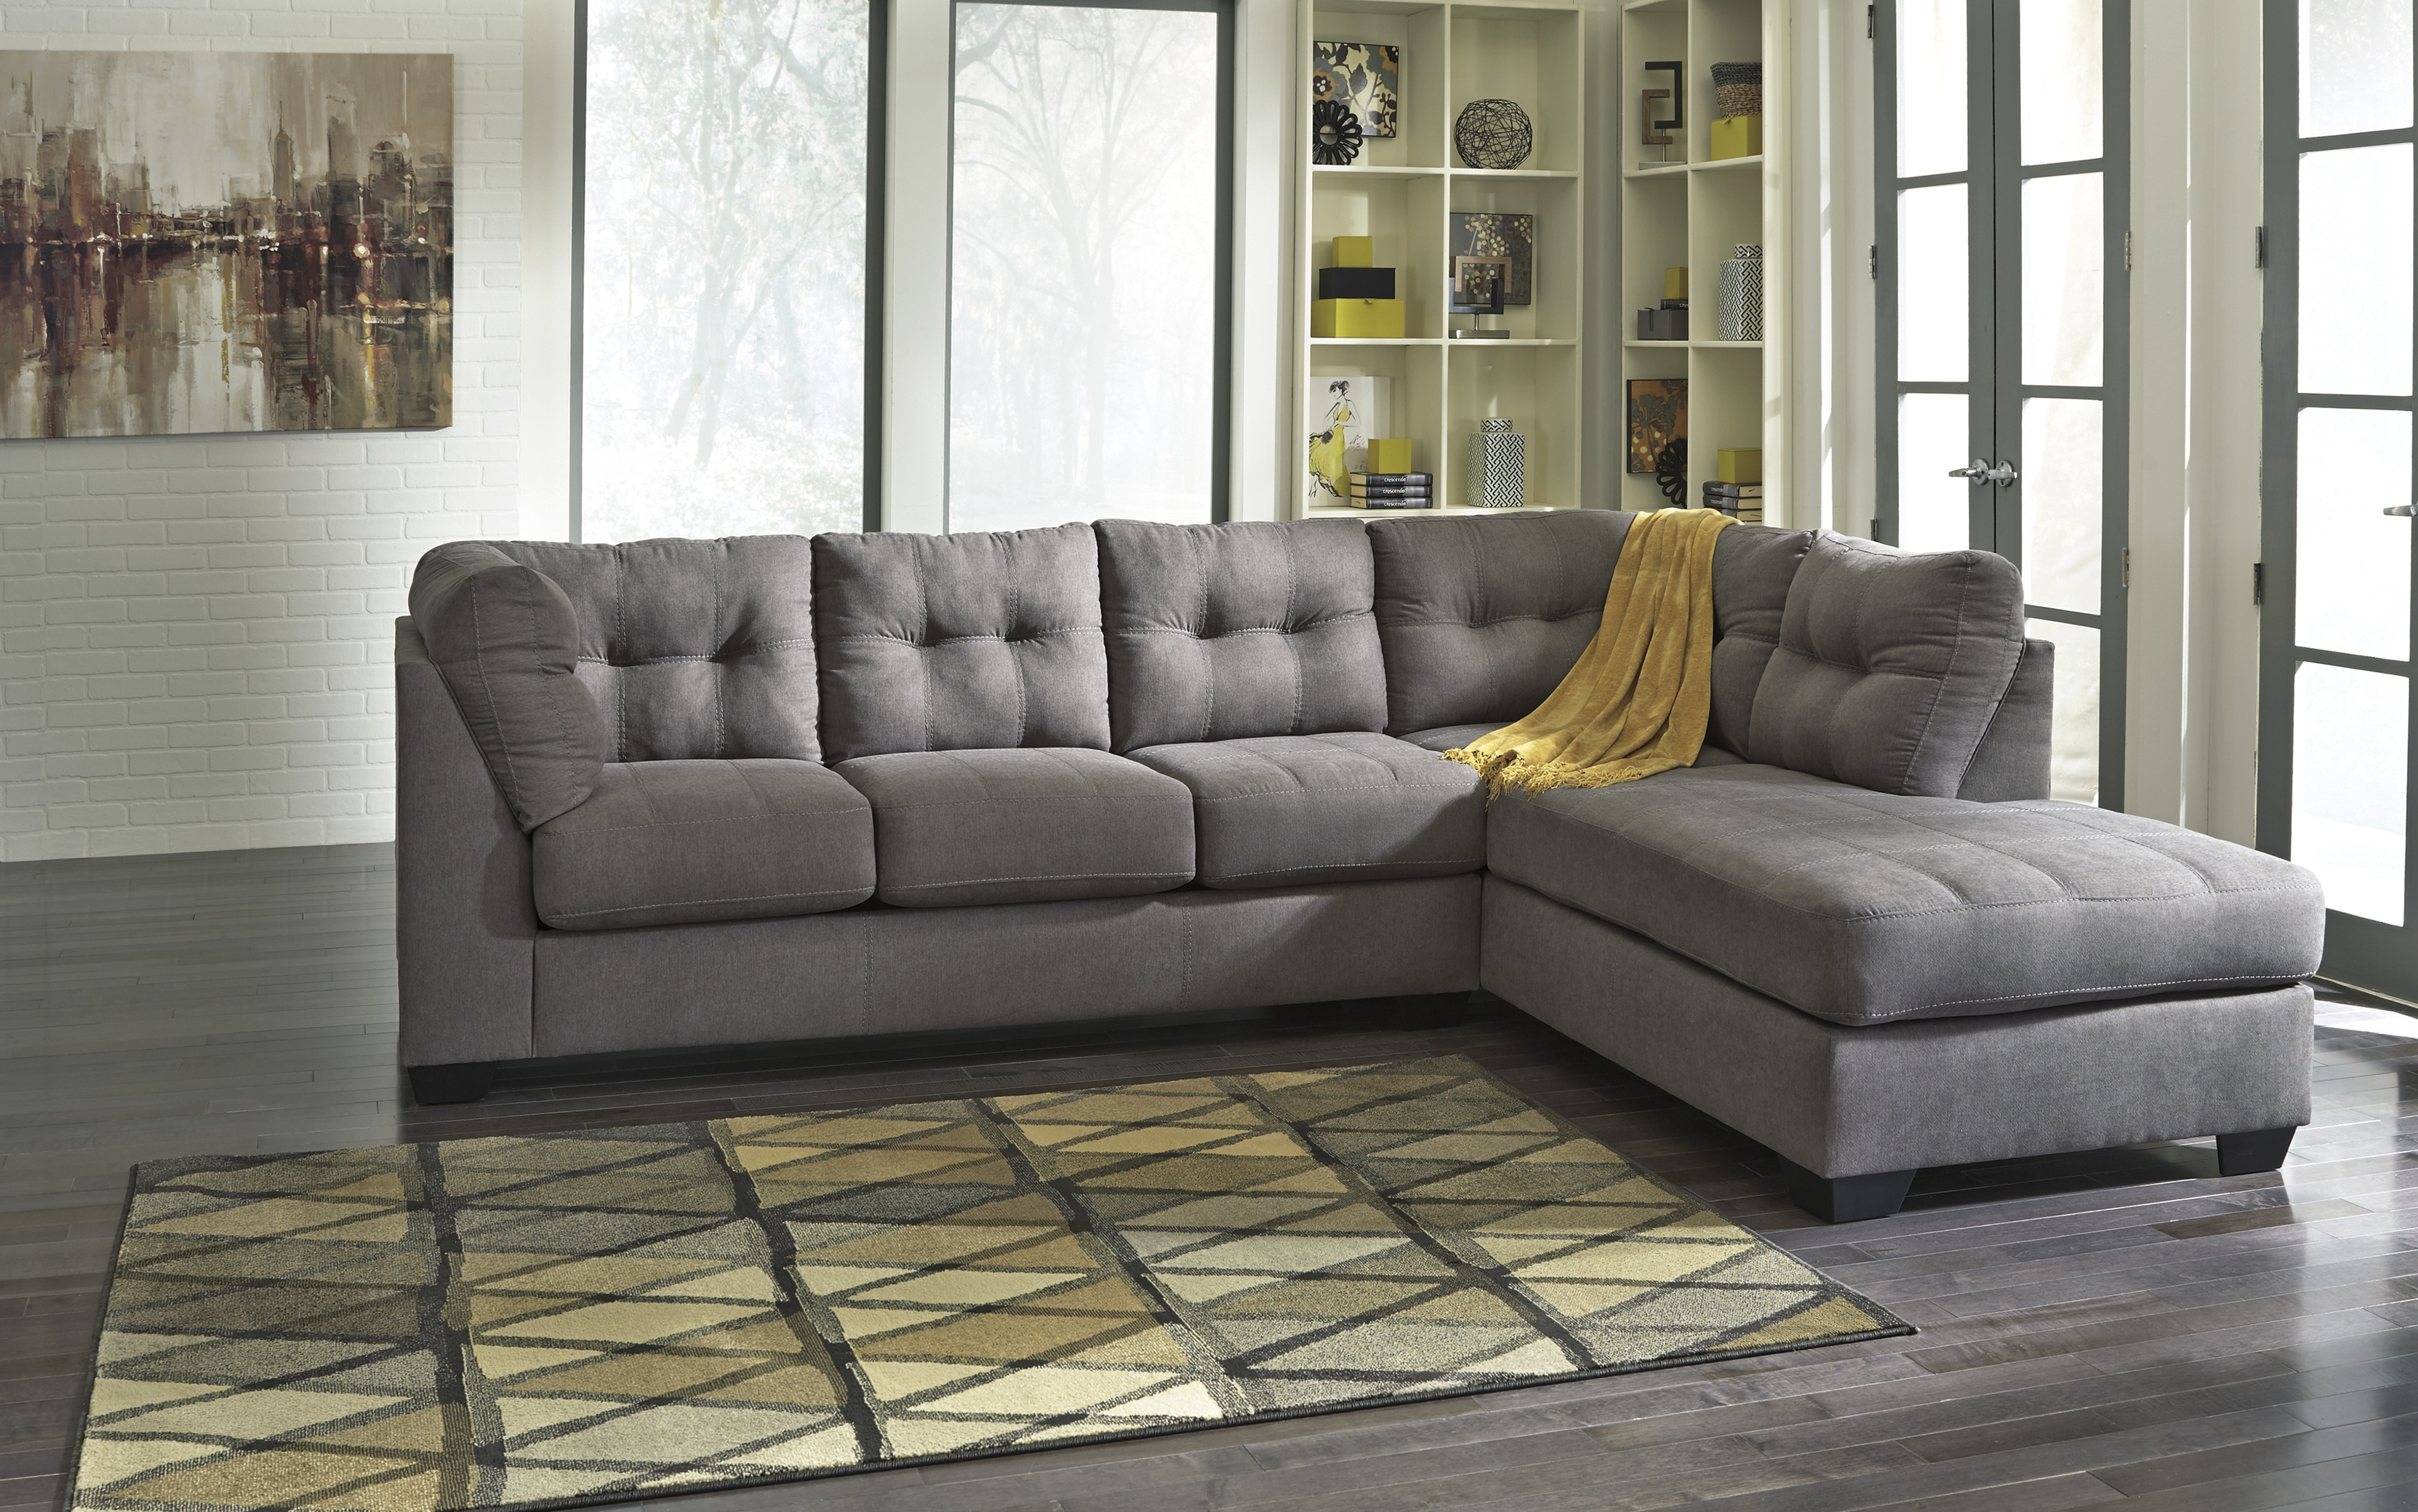 Ashley Tufted Sofas Intended For Well Known Couch: Best Gray Couch Ashley Furniture Standard Couch, Gray Couch (View 7 of 20)